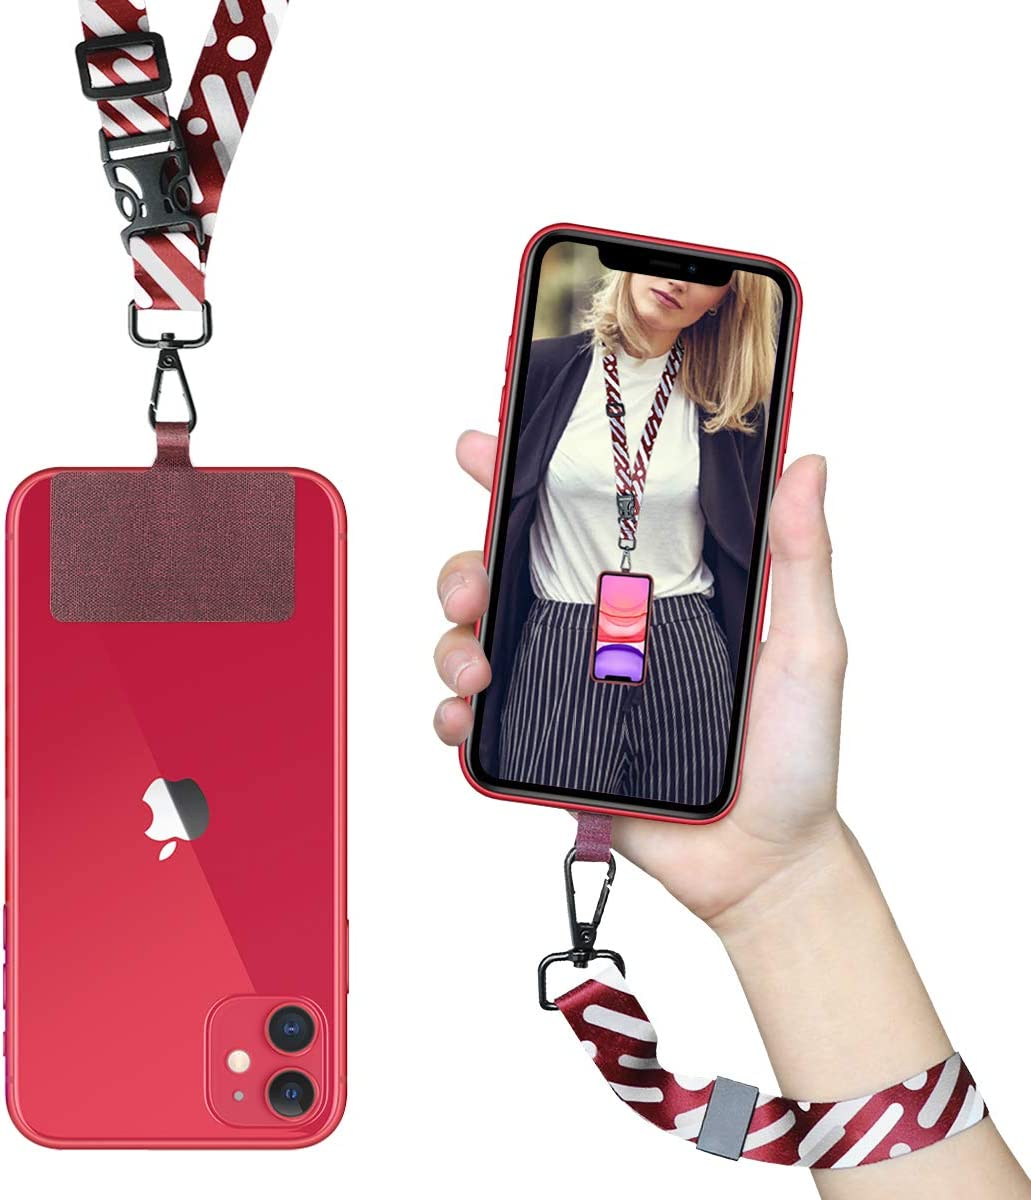 ROCONTRIP Crossbody Phone Lanyard Patch Neck Strap Lanyard with Detachable Neckstrap Compatible with Most Smartphone for iPhone Google Pixel LG HTC Huawei